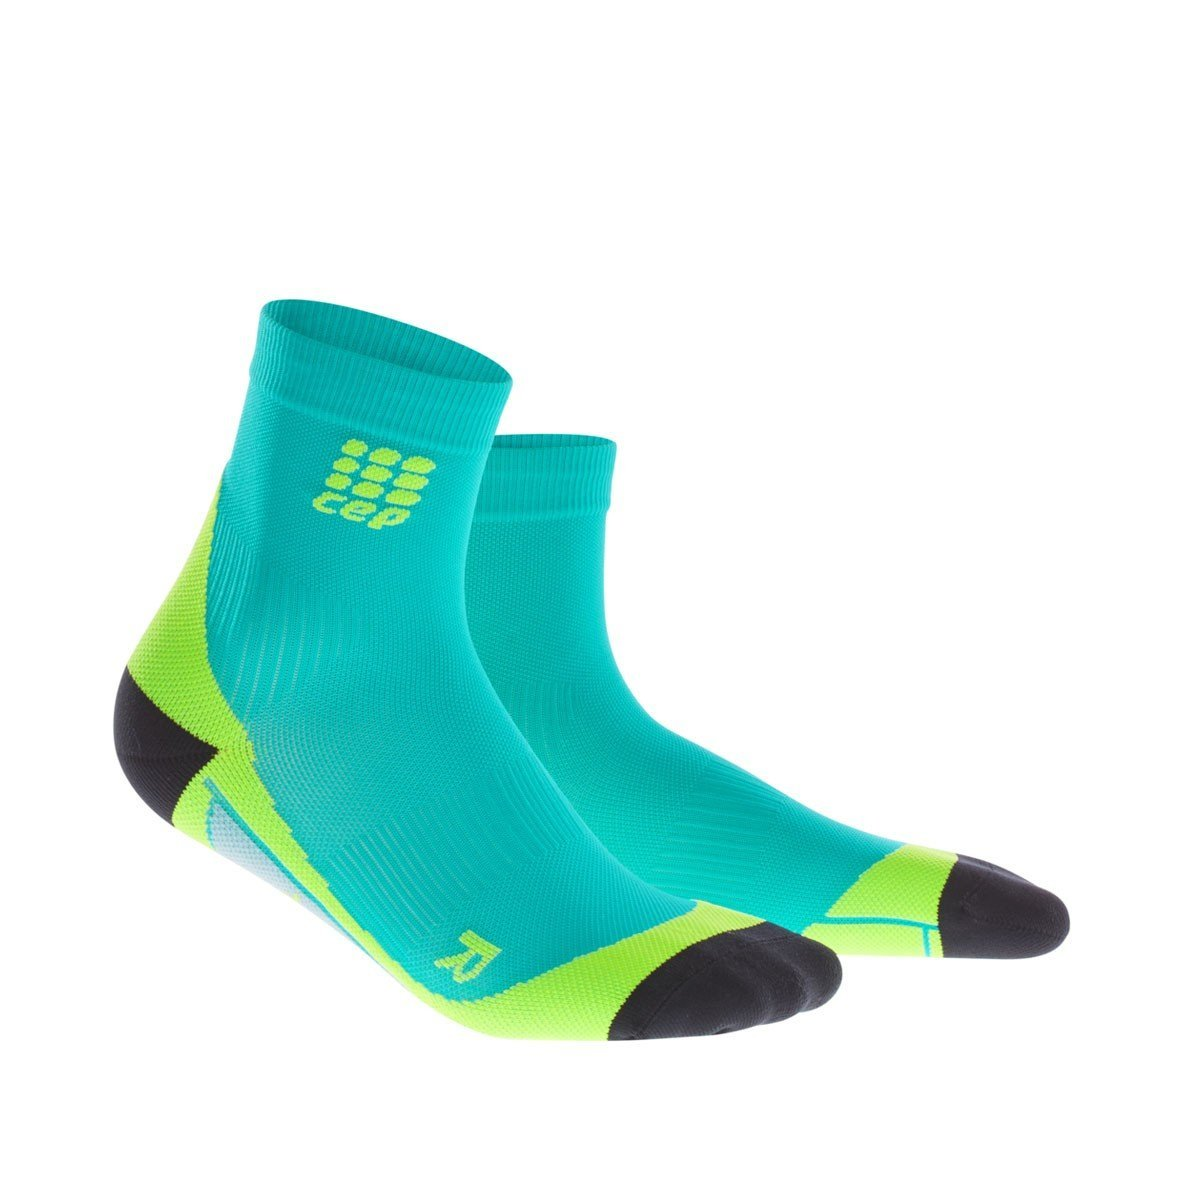 CEP Women's Dynamic+ Short Socks with Compression and Light, Breathable Fit for Cross-Training, Running, Recovery, Tiathletes, and all Endurance and Team Sports